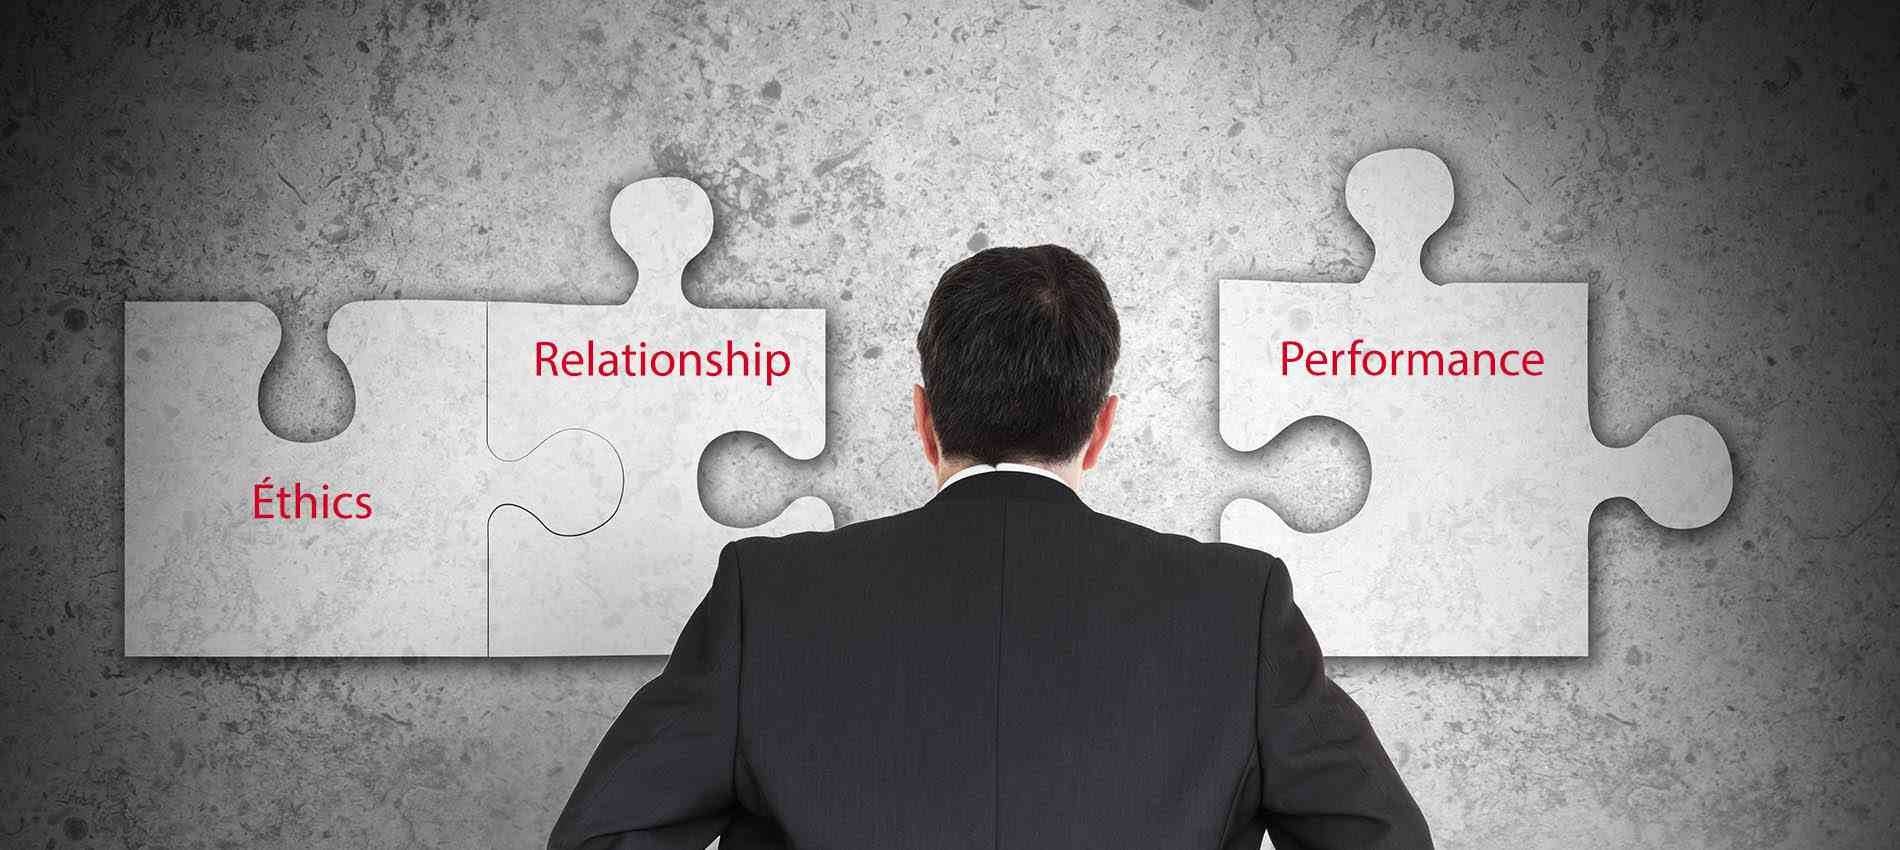 Ethics Relationship Performance Igmasa